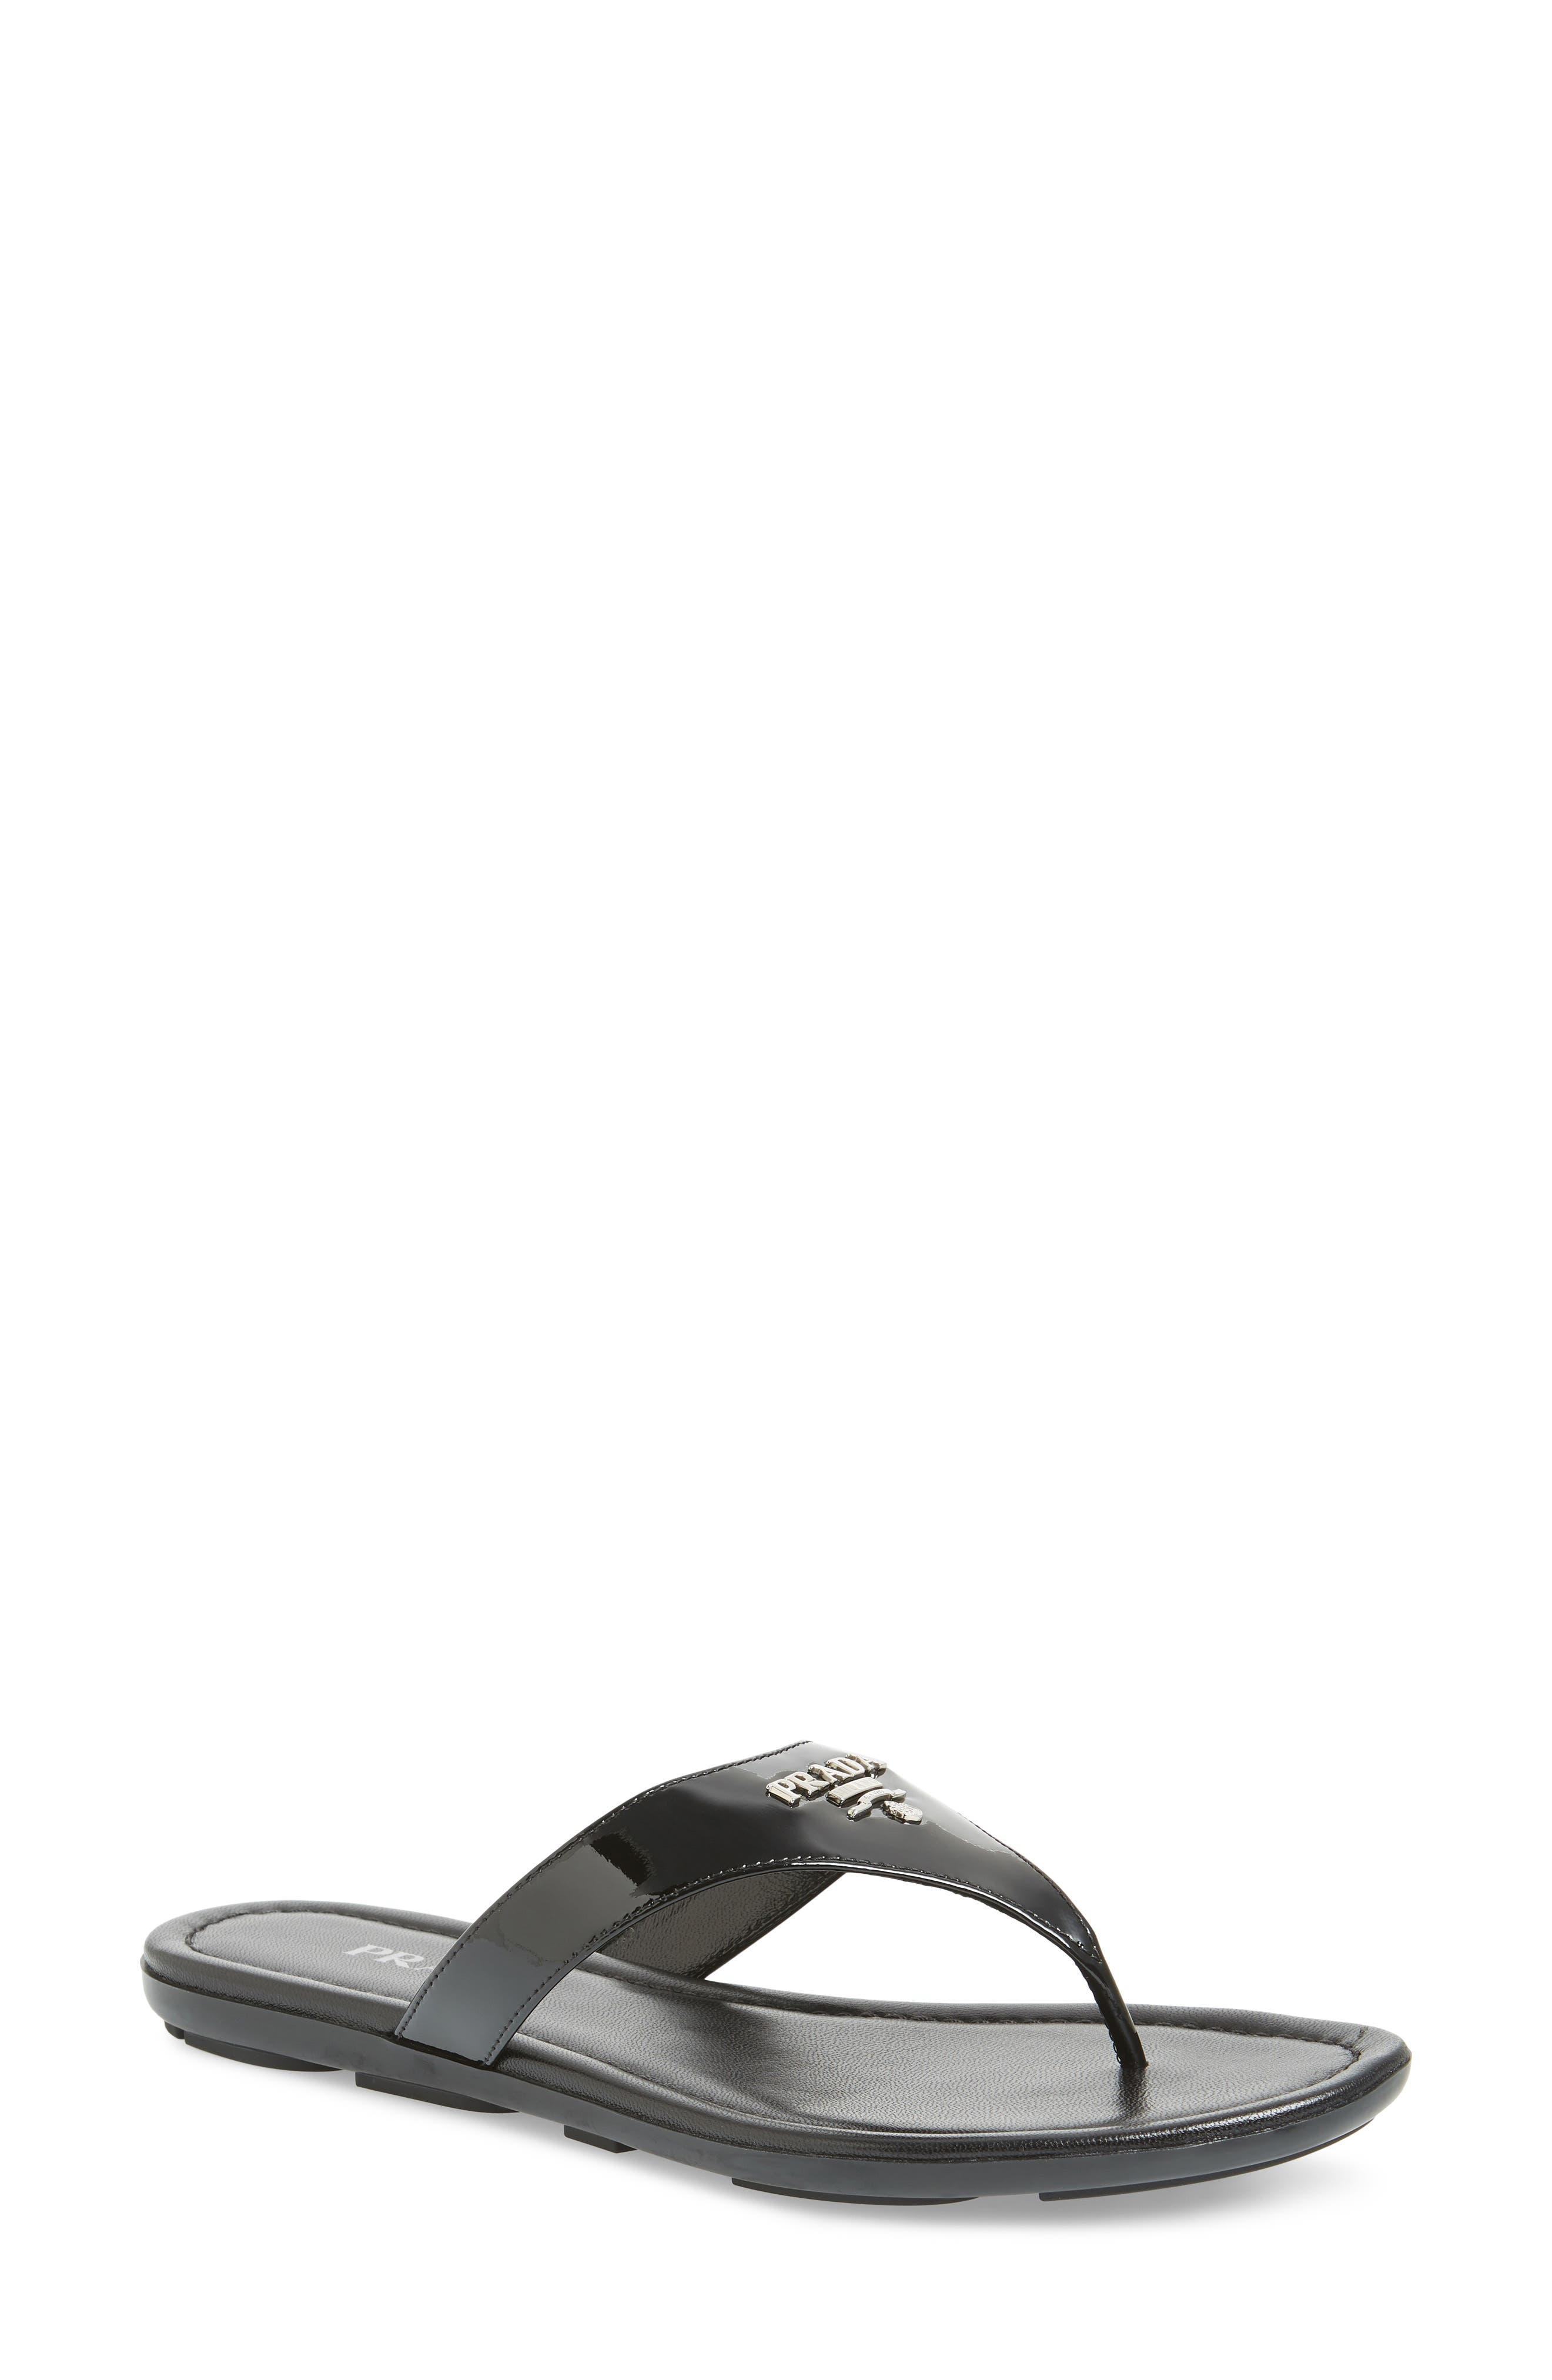 PRADA Logo Flip Flop, Main, color, BLACK